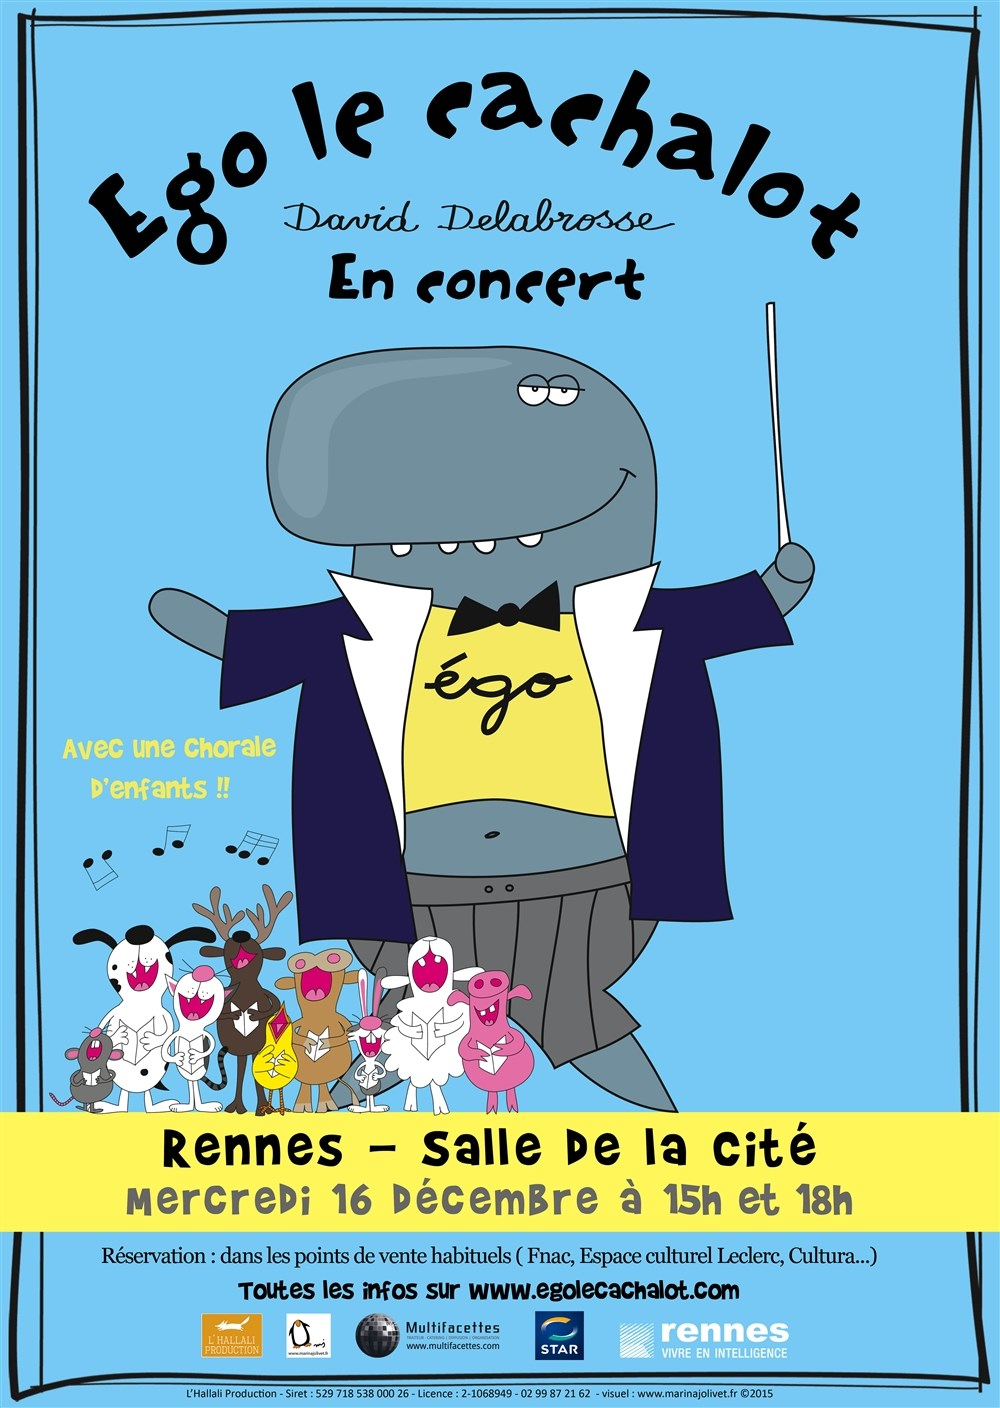 Ego le cachalot Rennes